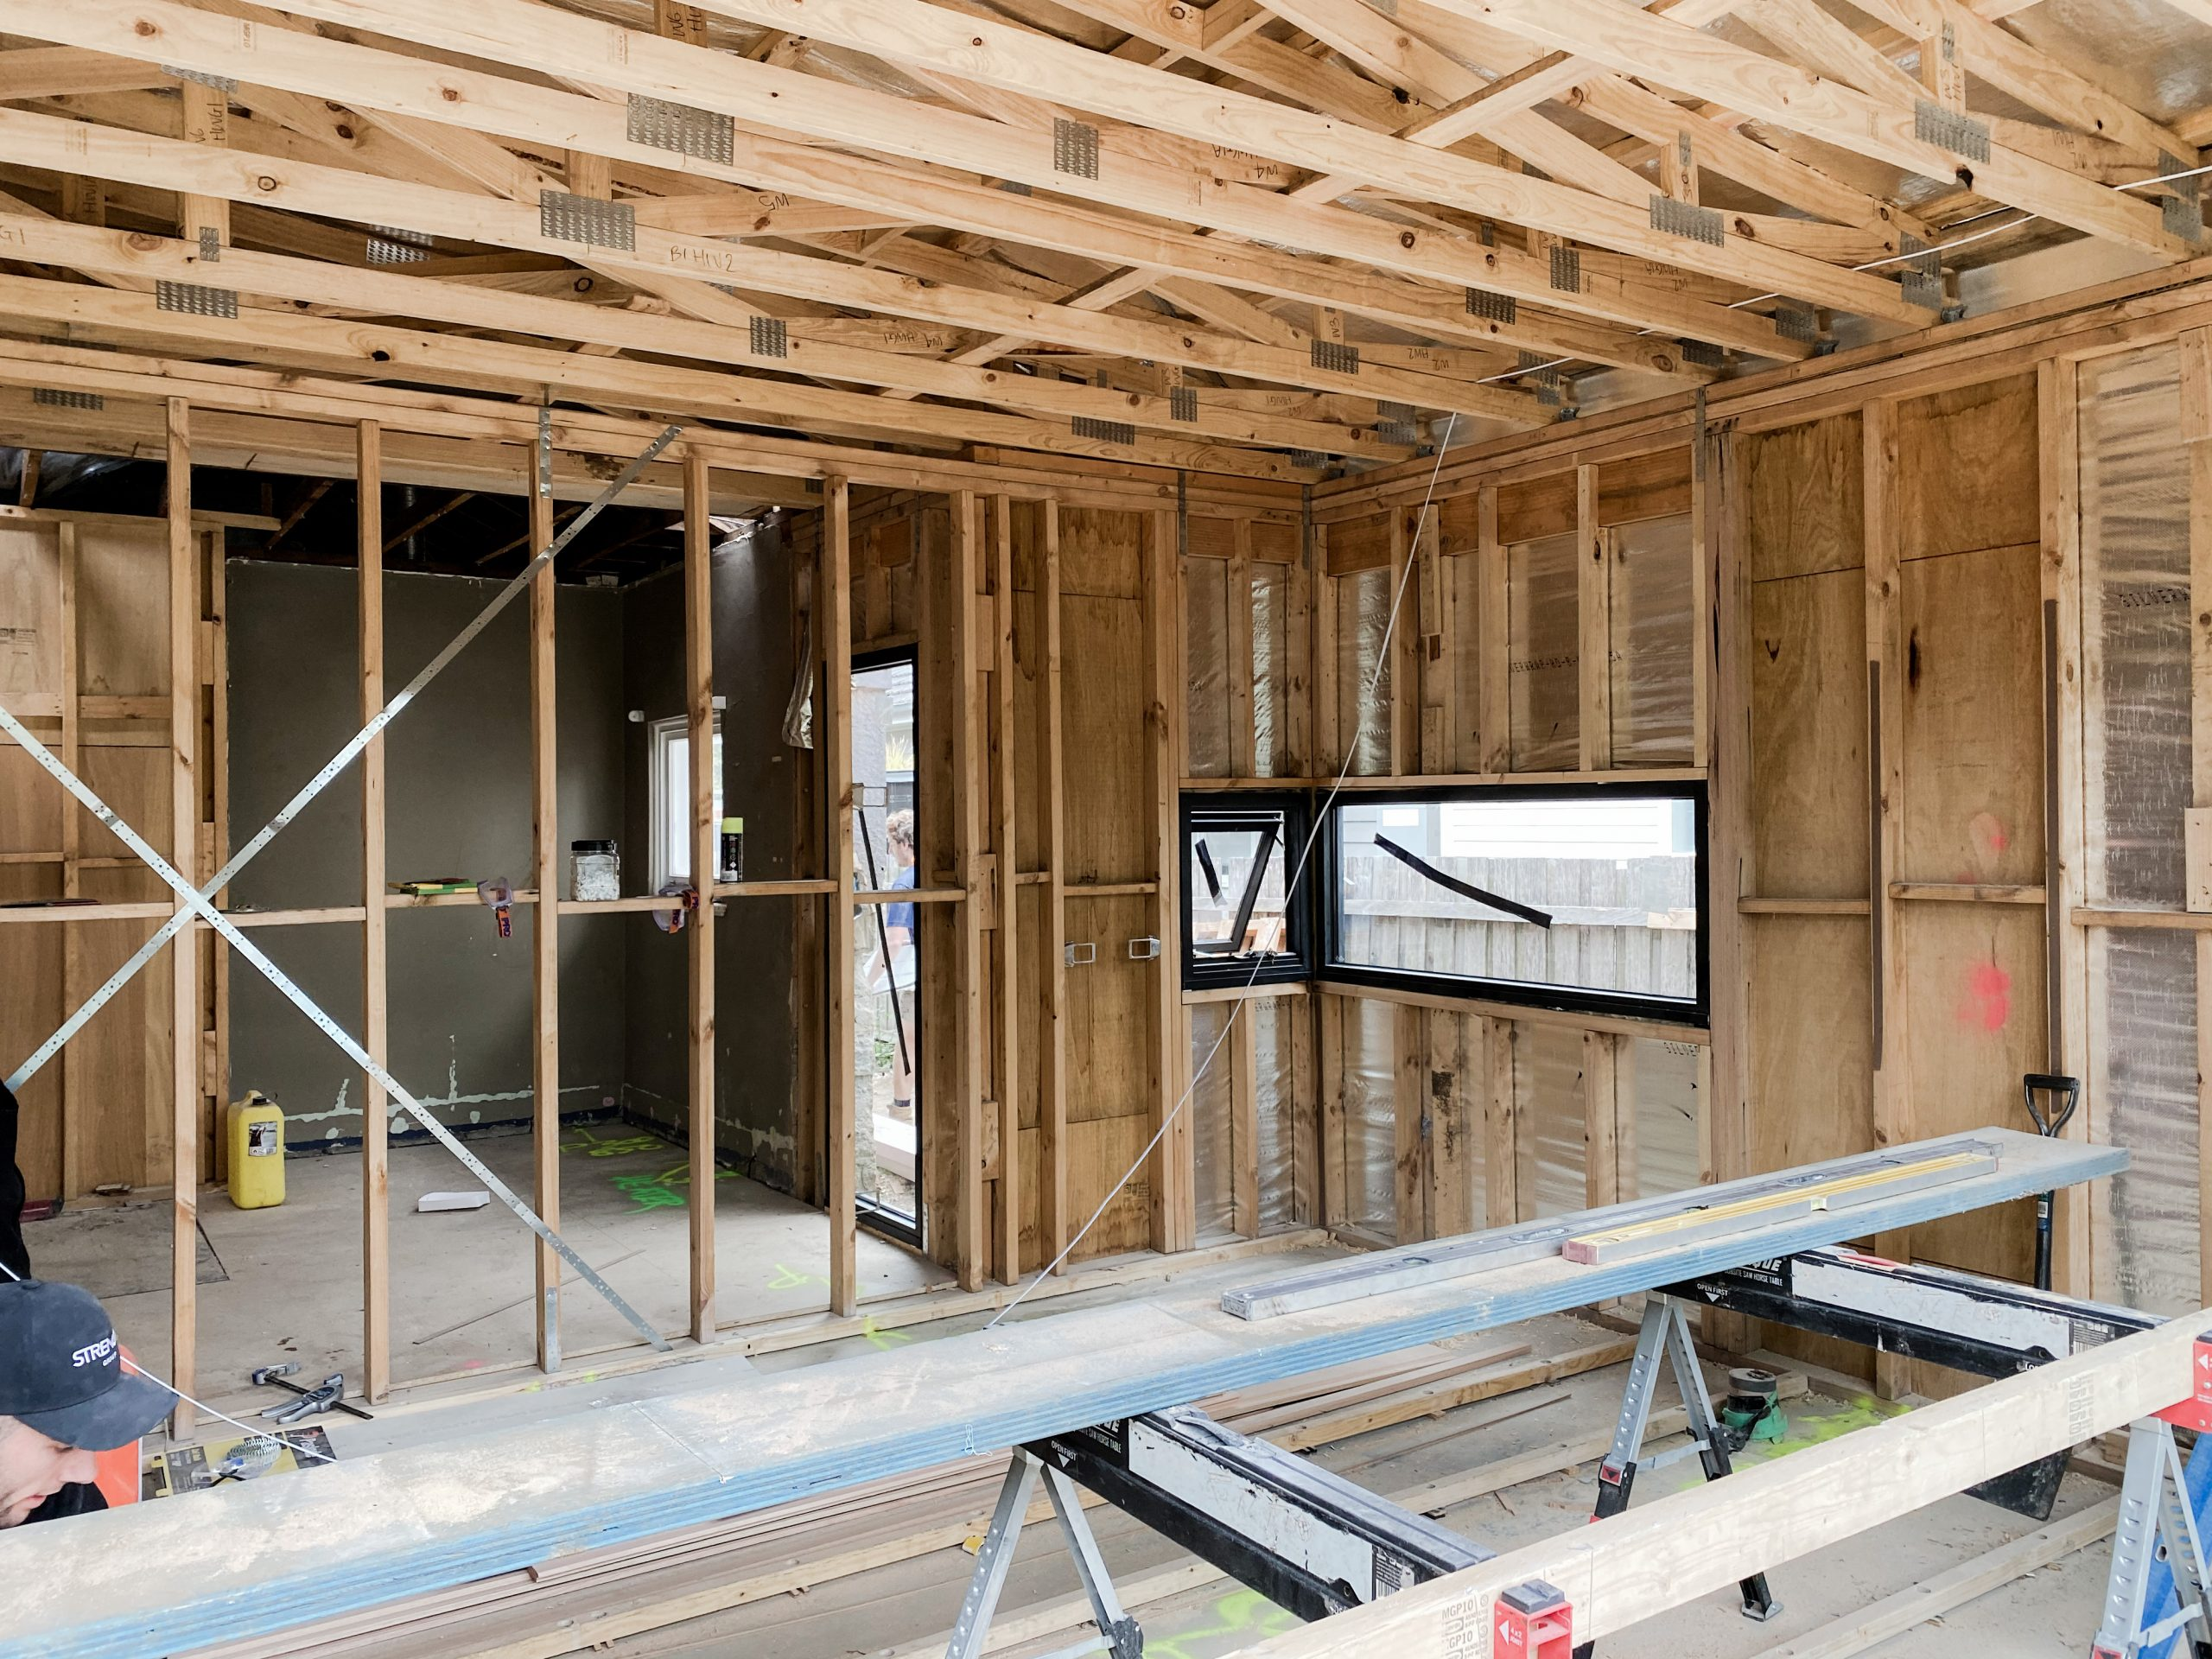 How much does a renovation add to your home?